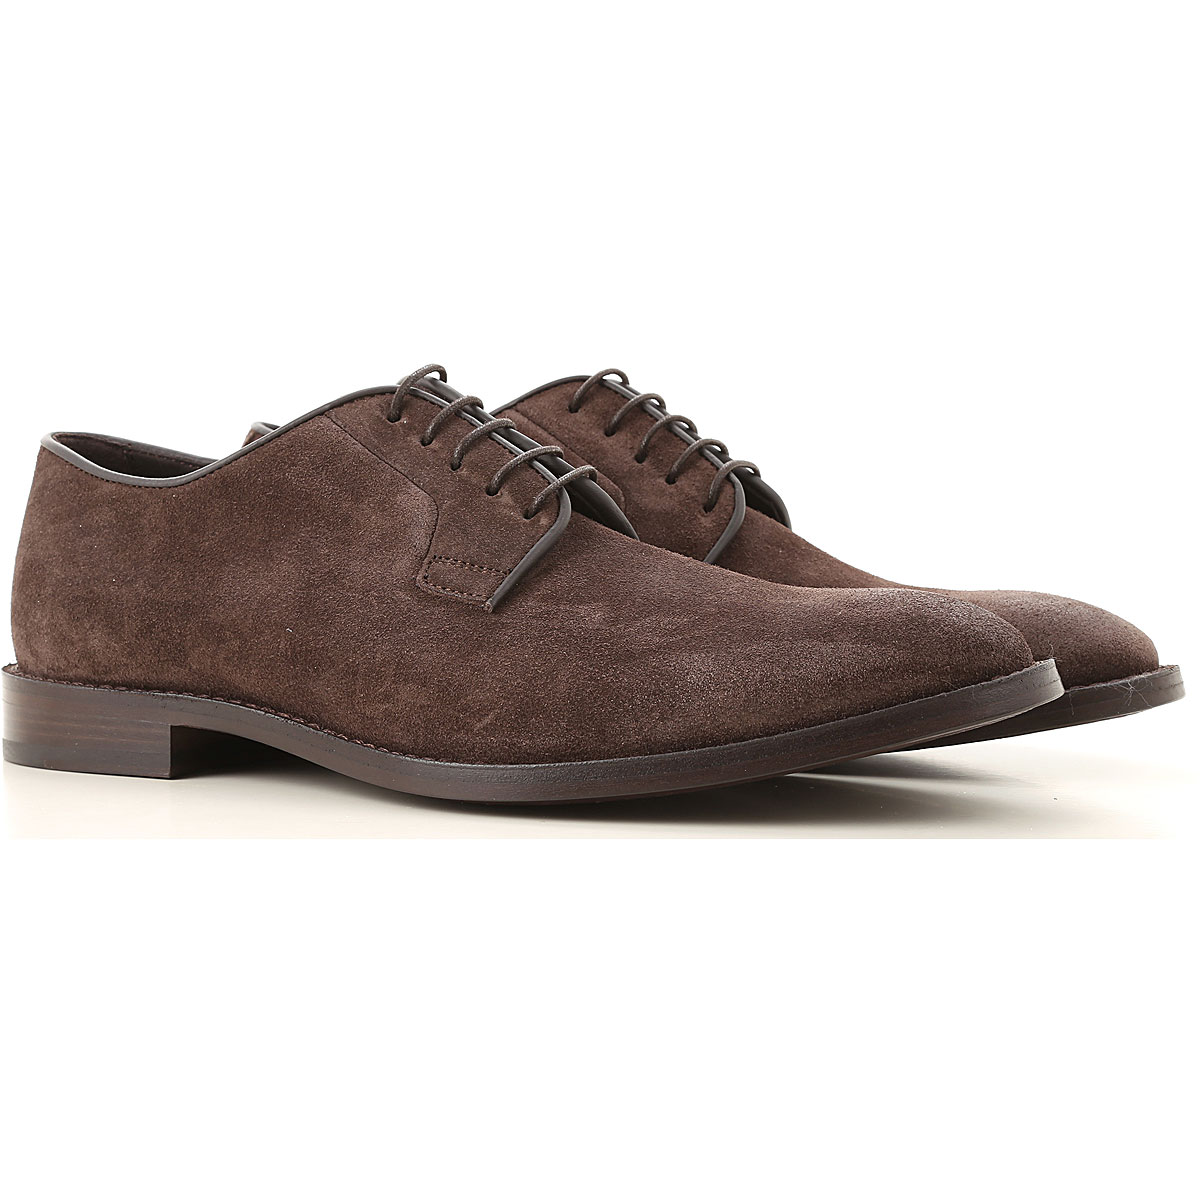 Paul Smith Lace Up Shoes for Men Oxfords Derbies and Brogues On Sale USA - GOOFASH